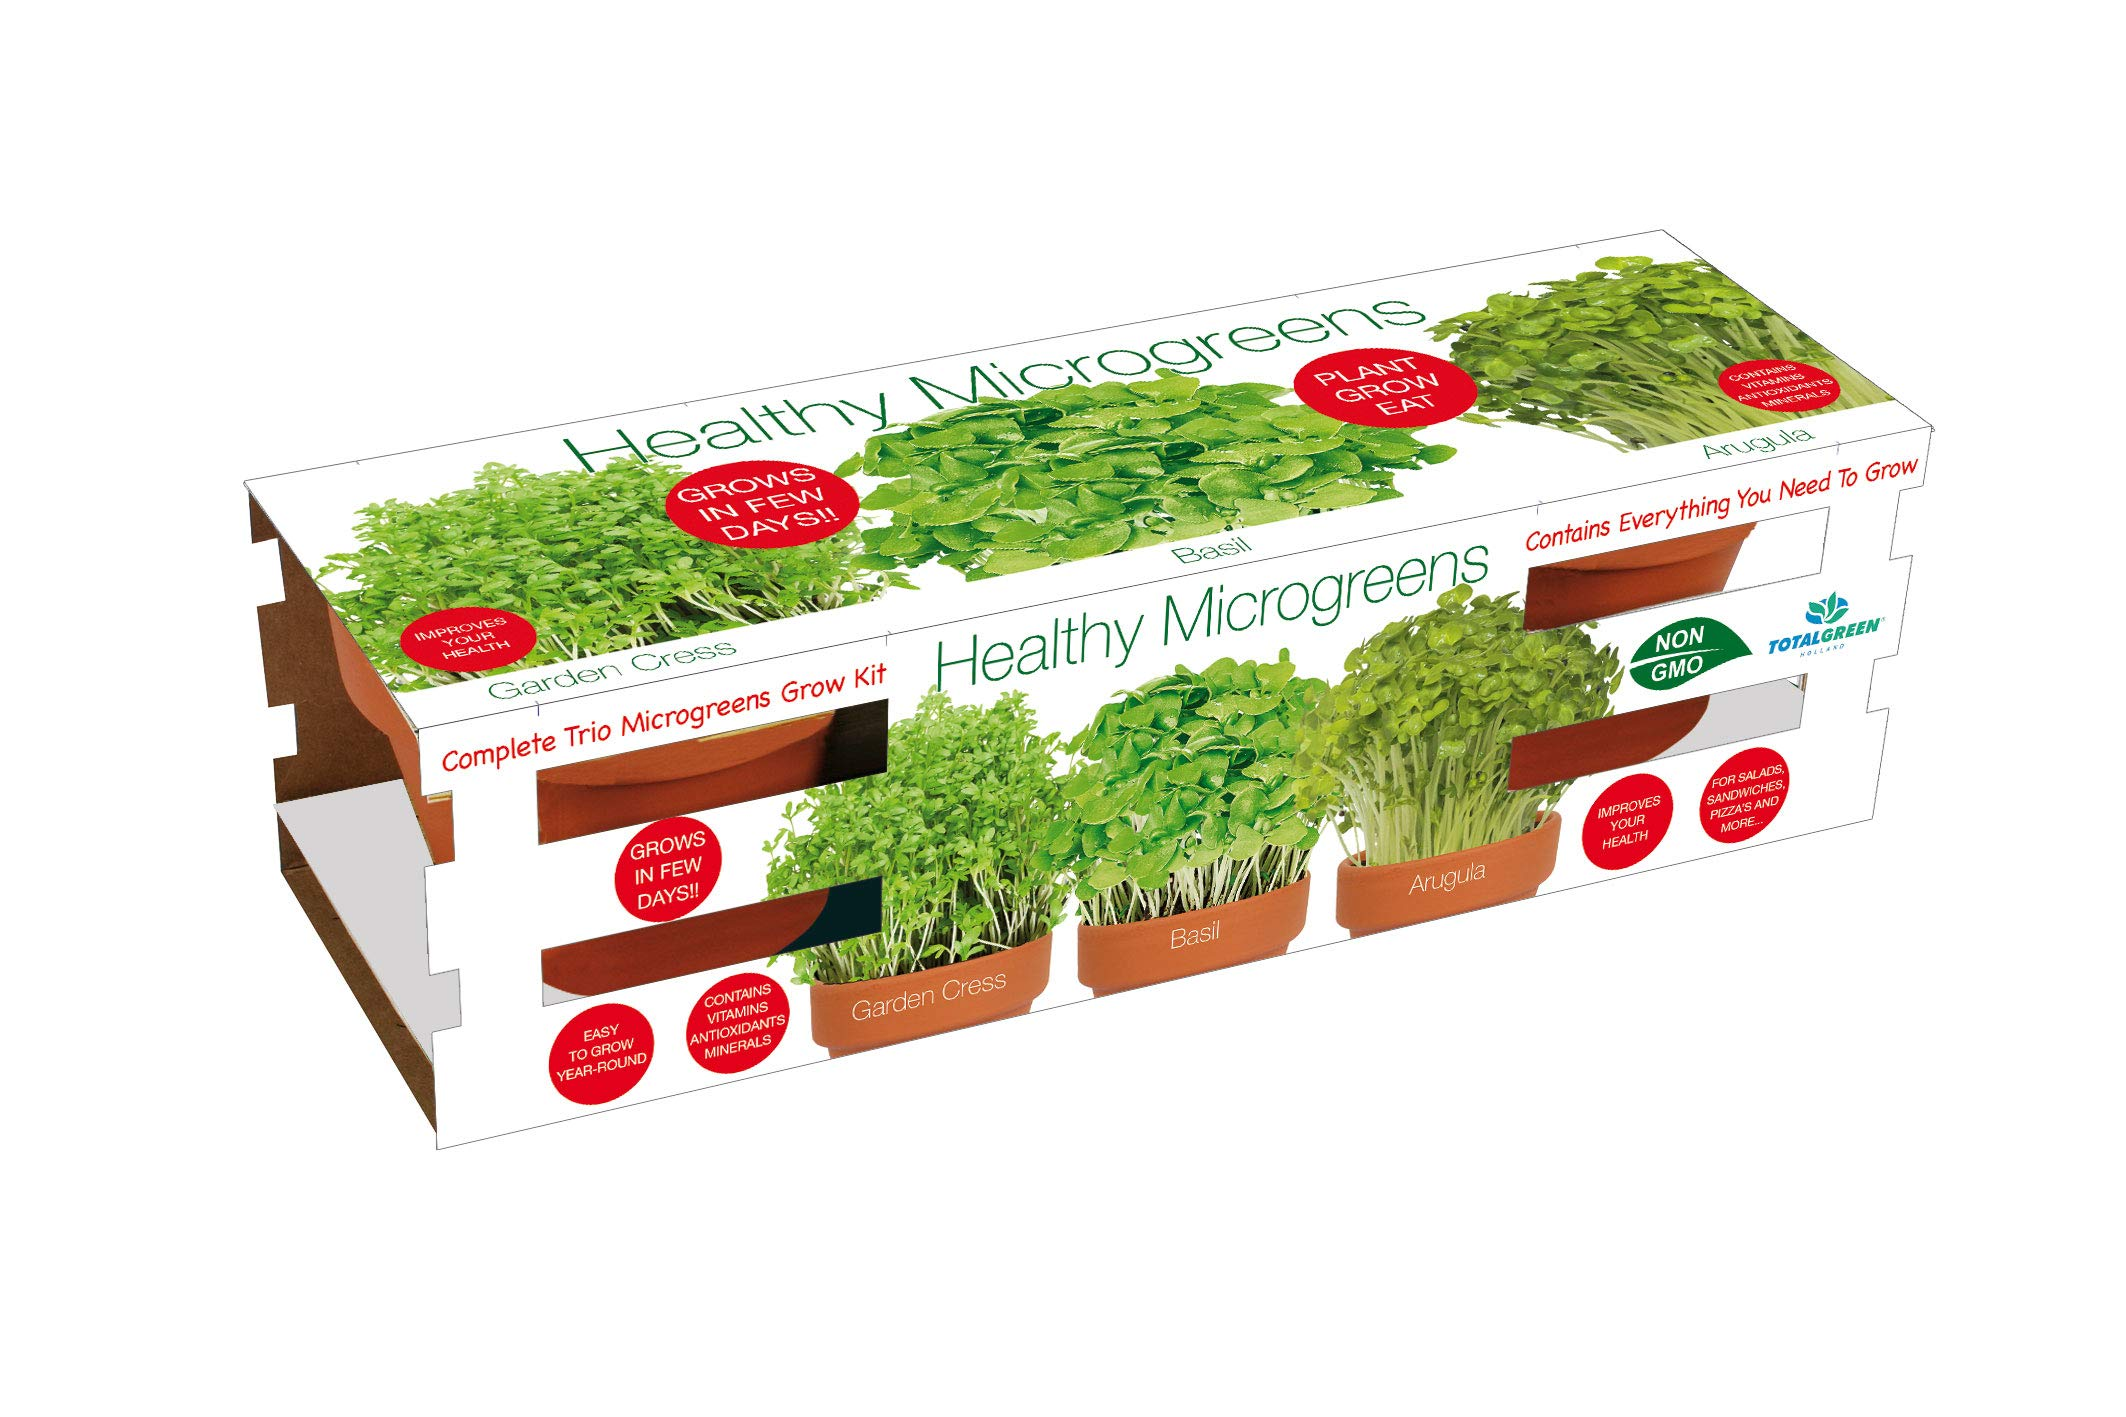 Microgreens Trio Grow Kit by TotalGreen Holland | Home Project Germination Kit | Grow from Seed | Grow Your own Garden Cress, Basil & Arugula